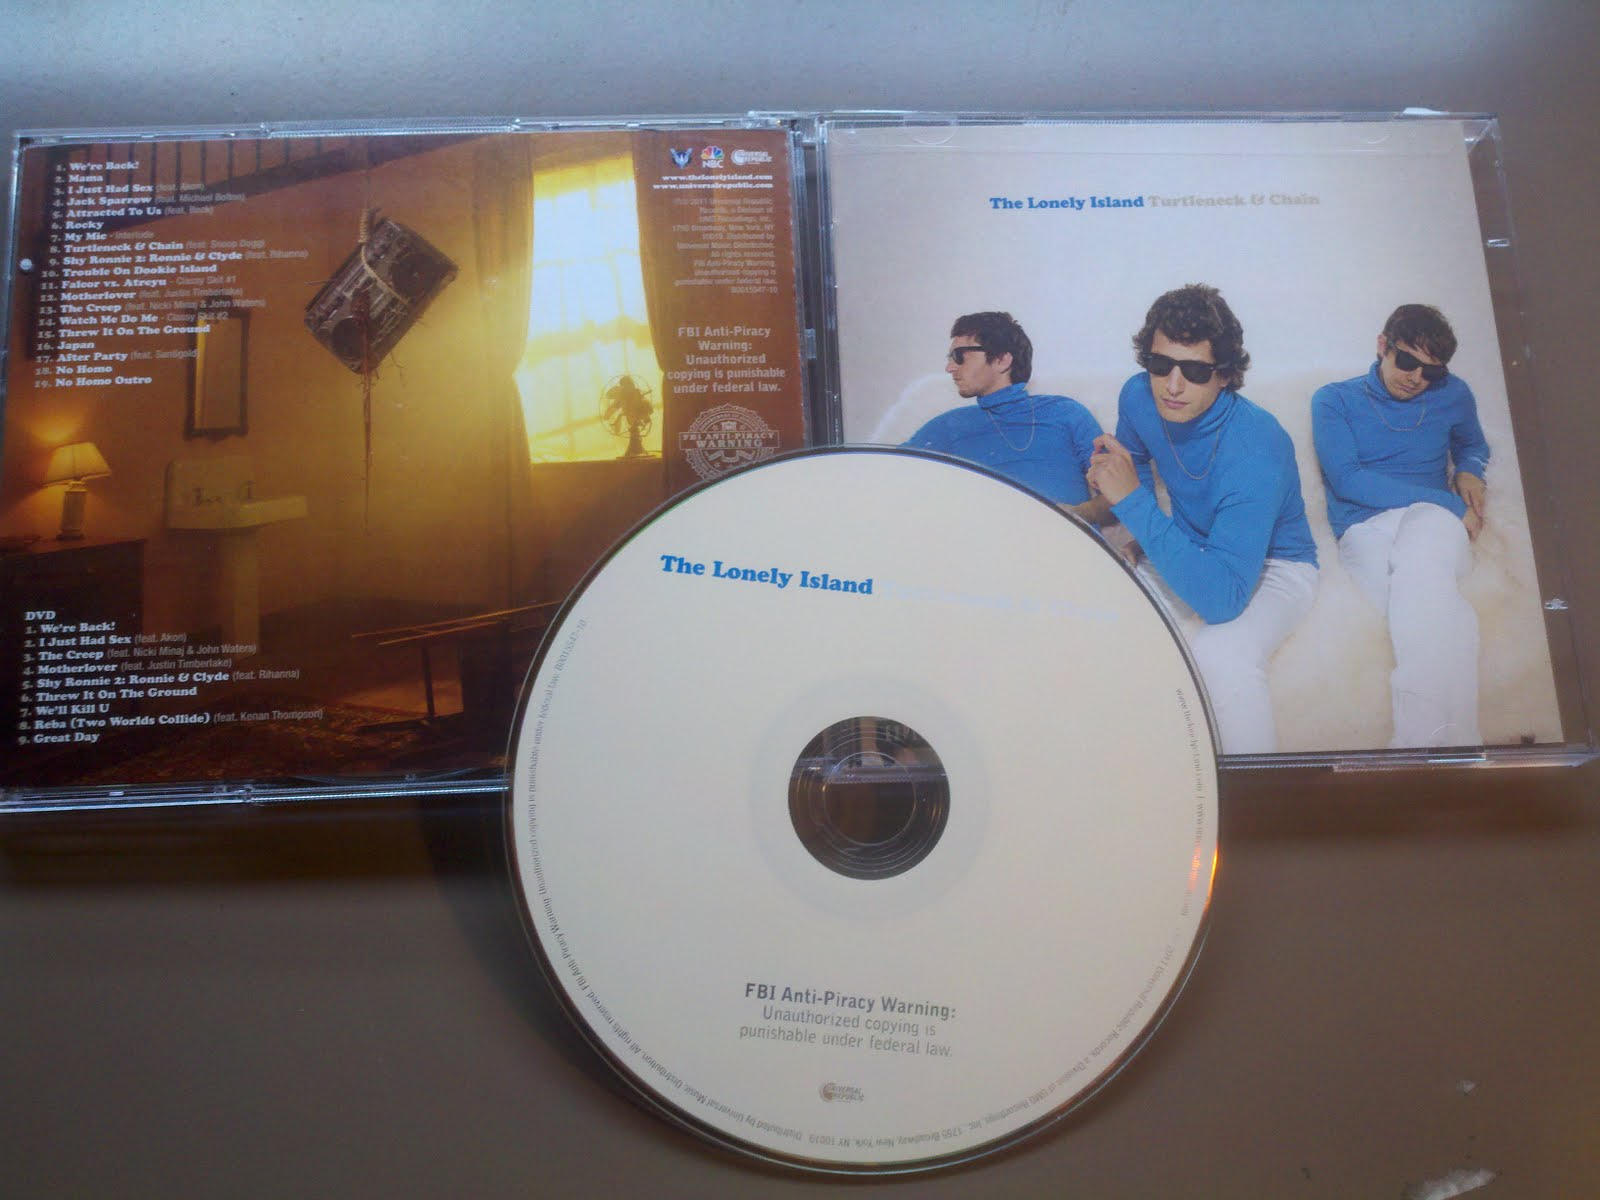 http://2.bp.blogspot.com/-XPkDm-99Gho/TcdP_ZhnqaI/AAAAAAAAMGw/pcpkDyYB2IQ/s1600/00-the_lonely_island-turtleneck_and_chain-proof-2011.jpg